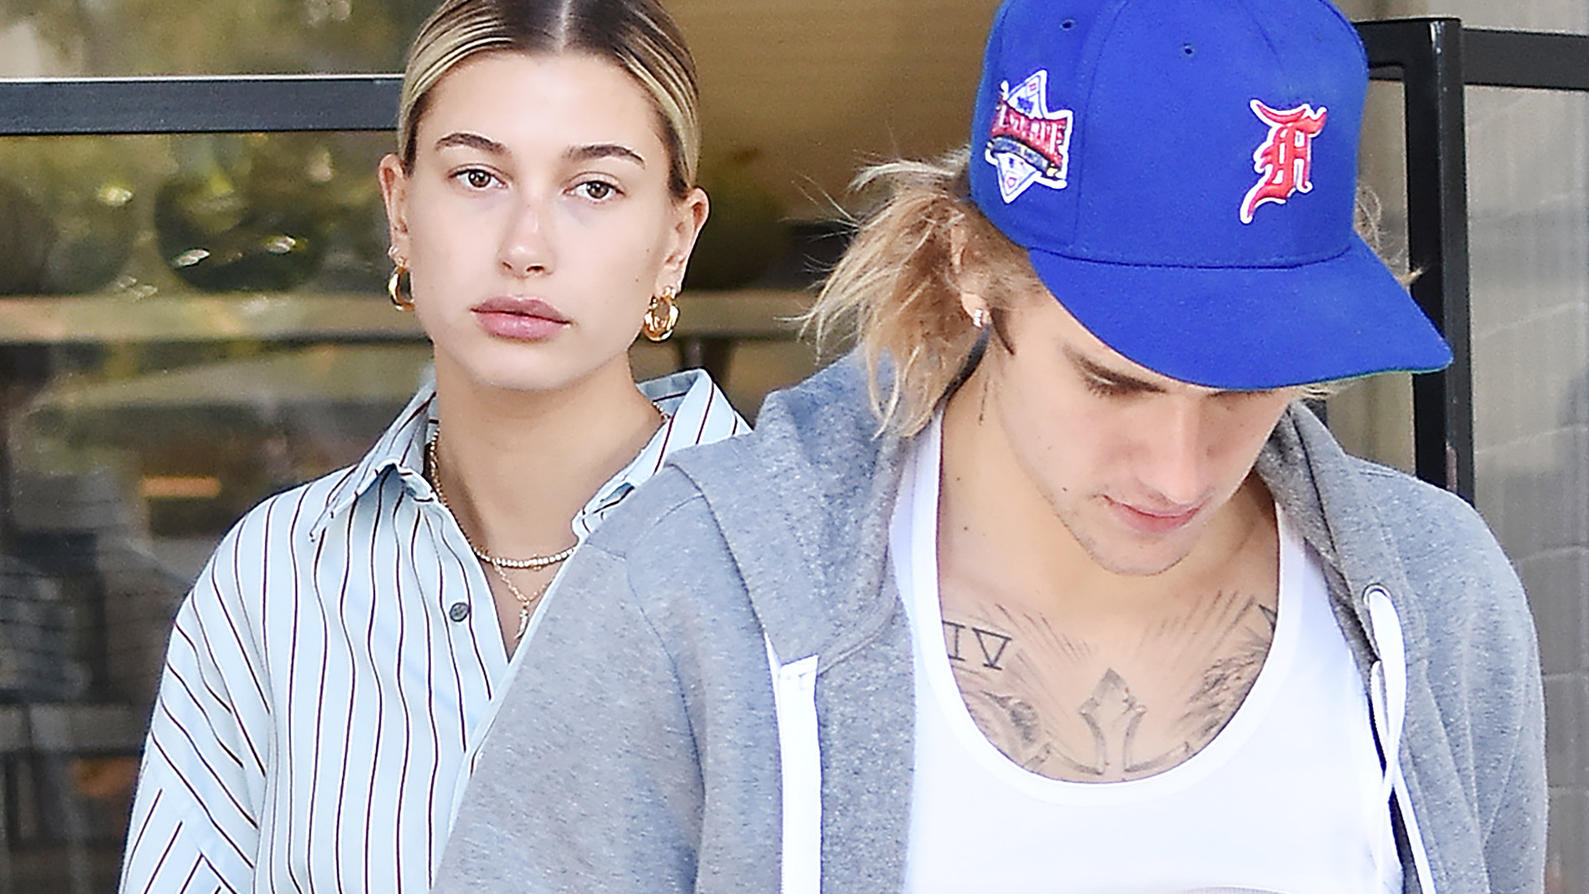 Justin Bieber and, fiance, Hailey Rhode Baldwin are seen leaving West Hollywood's Joans on 3rd in Los Angeles, CA.Pictured: Justin Bieber,Hailey Rhode Baldwin,Hailey BaldwinRef: SPL5030919 041018 NON-EXCLUSIVEPicture by: SplashNews.comSplash News and